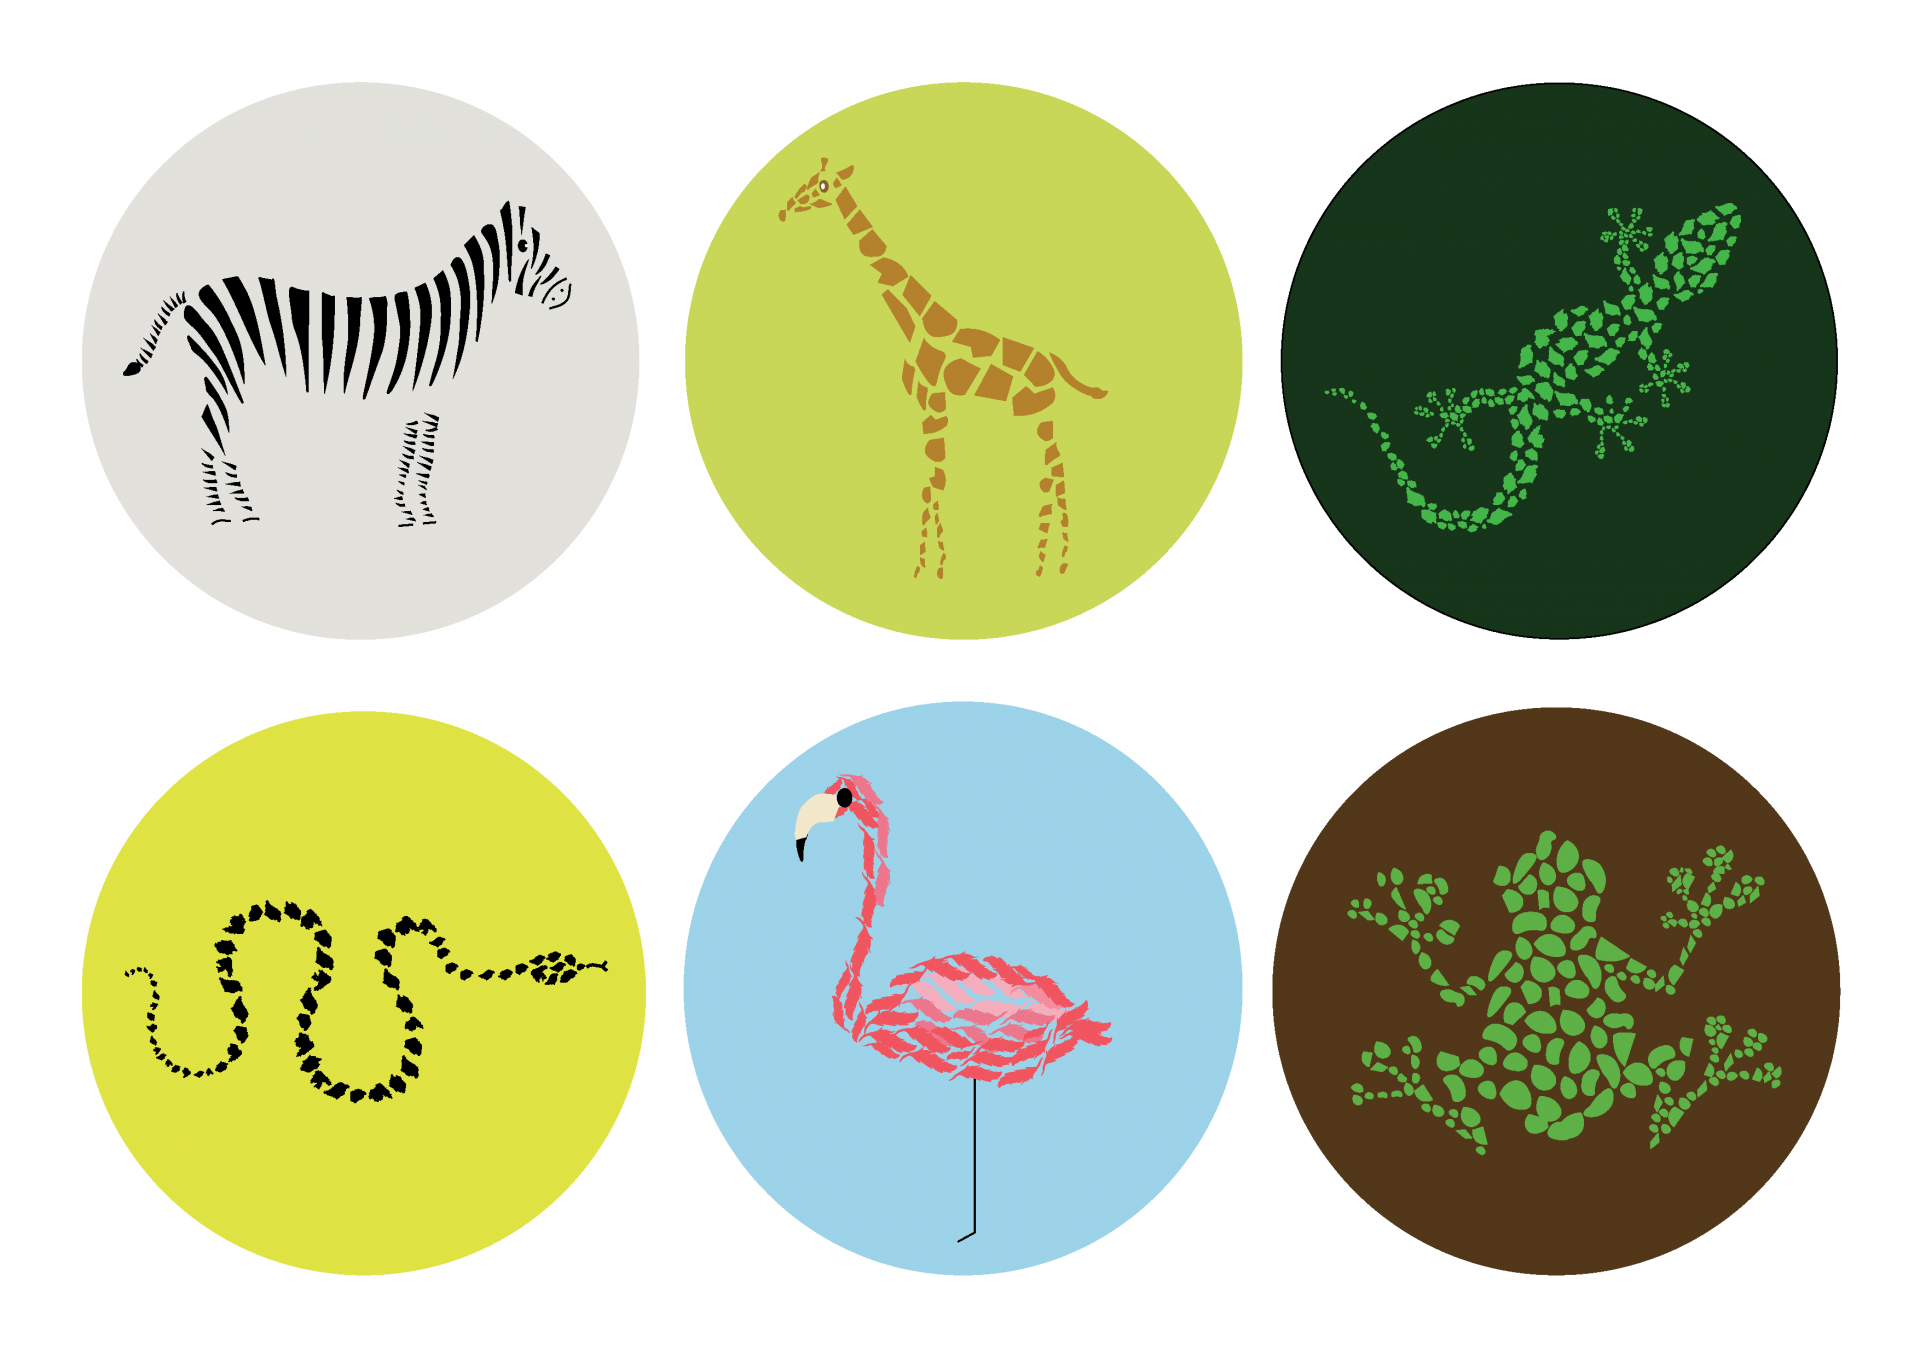 Digital illustration. A variety of animals created using smaller shapes, each in a circle of a different colour.